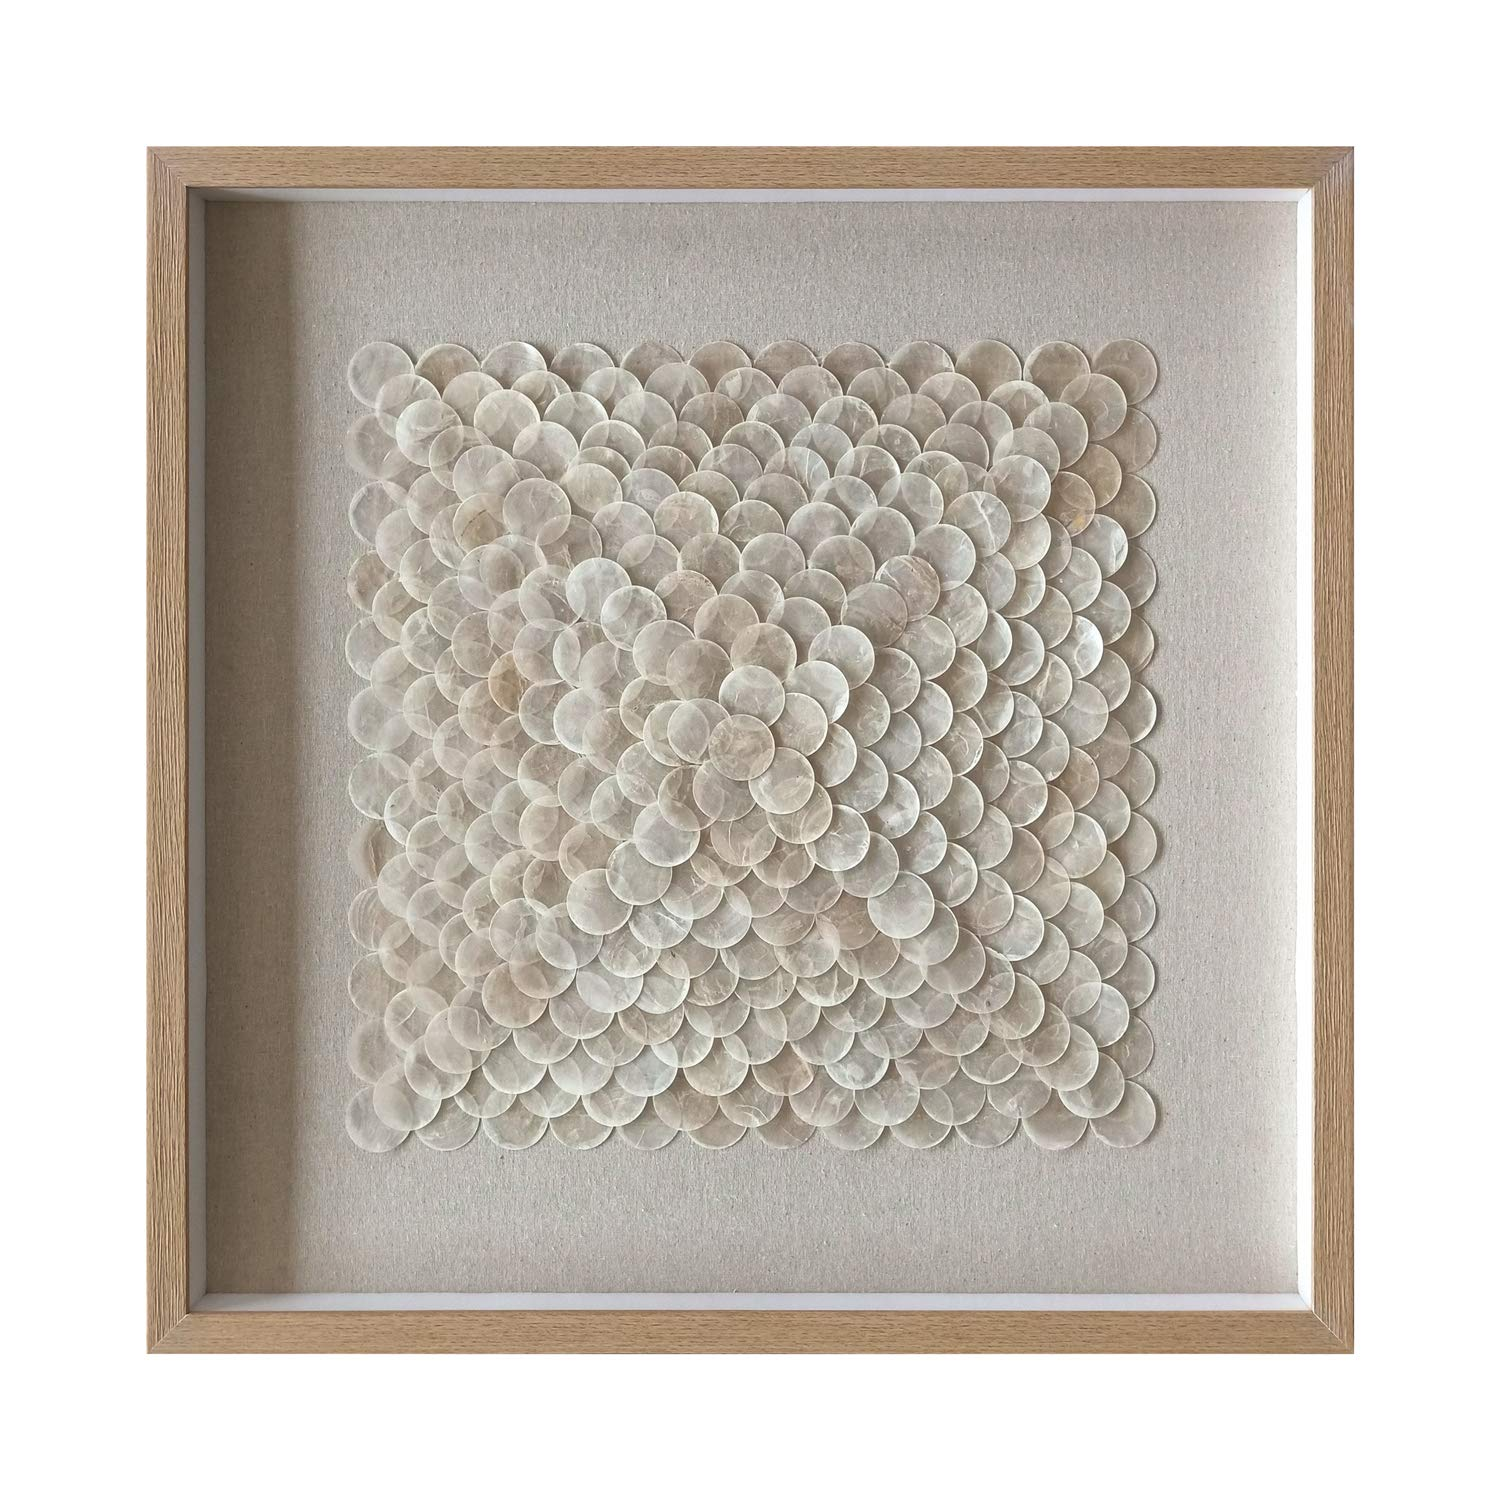 Capiz Shell Framed Wall Art, Abstract and Square Round Art Prints,Kids Decor, Living Room Entrance Corridor Wall Decoration Crafts Art Shadow Box